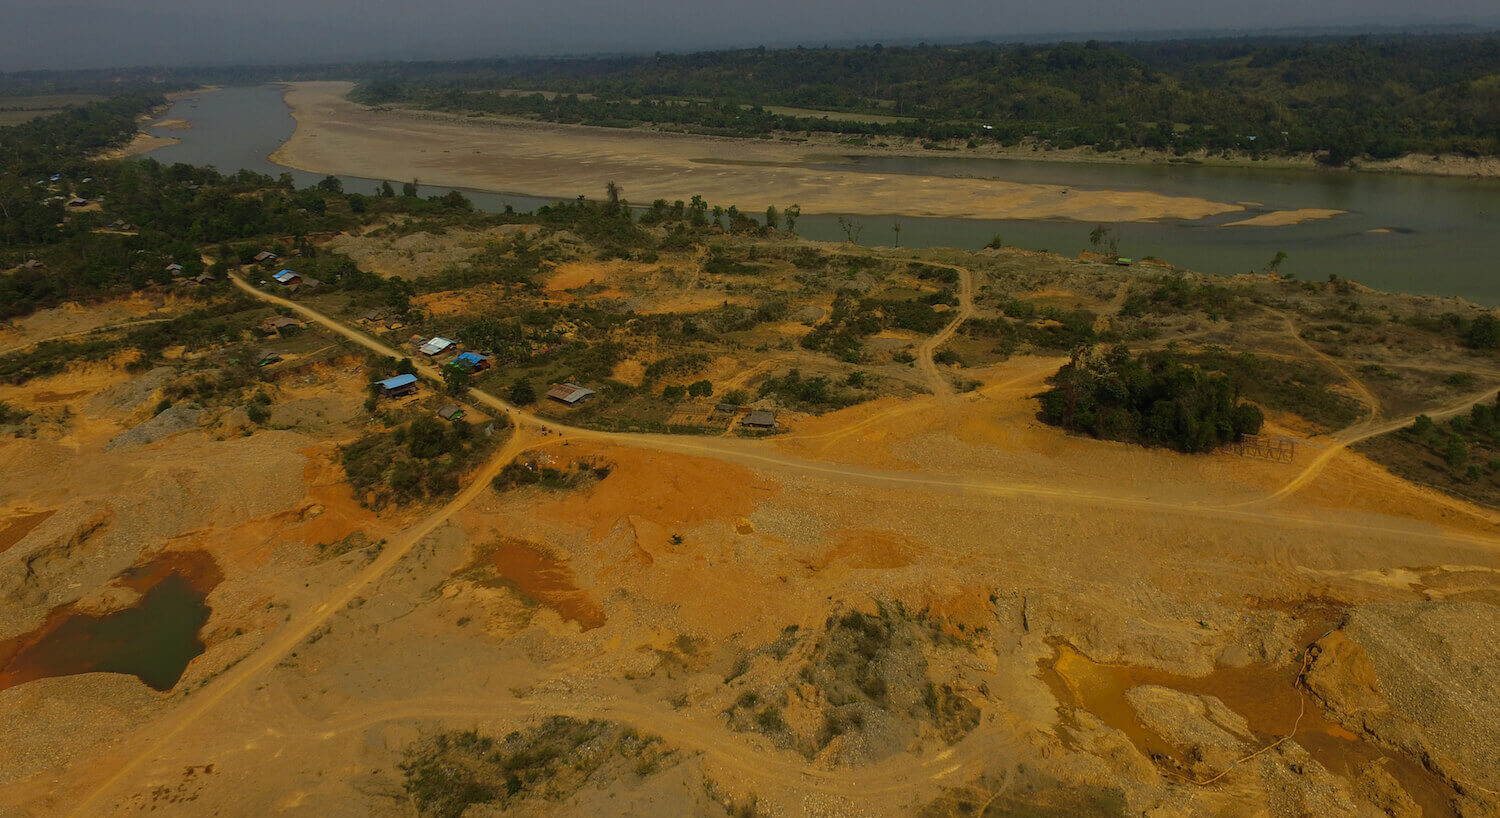 Aerial view of golden, barren landscape with road intersecting. River in background.